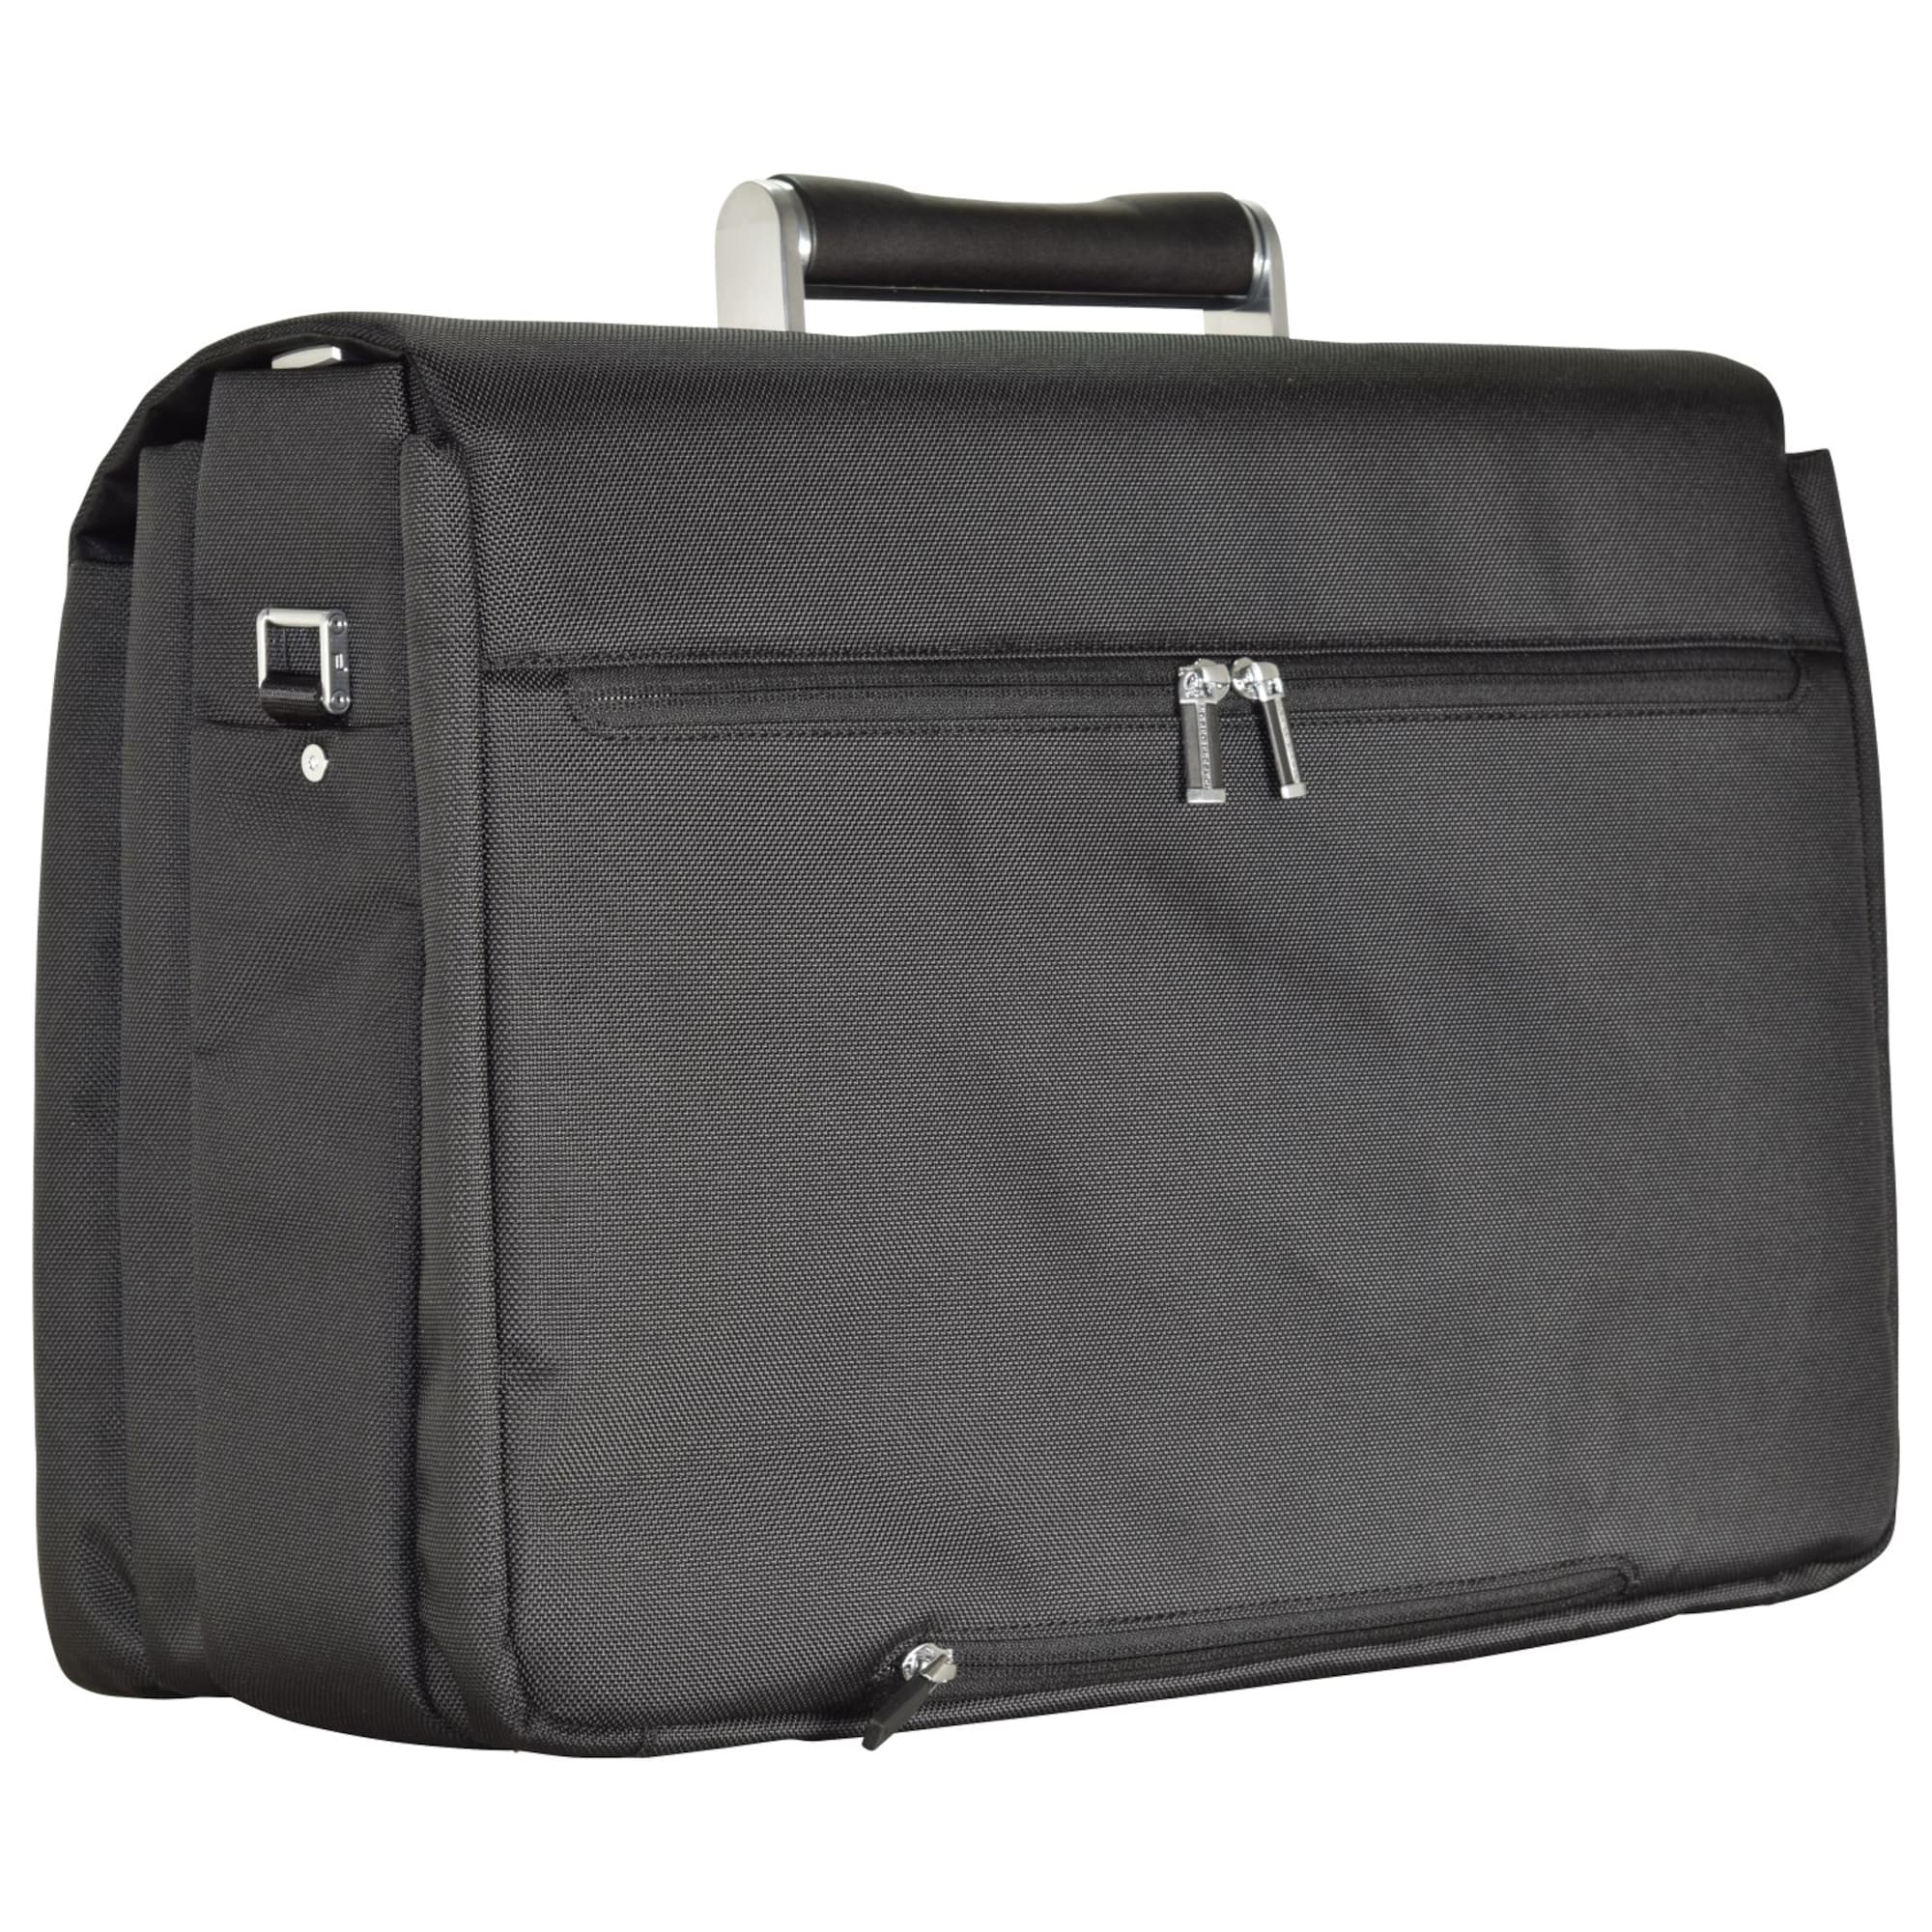 porsche design - Roadster 3.0 Brief Bag FM Aktentasche 42 cm Laptopfach